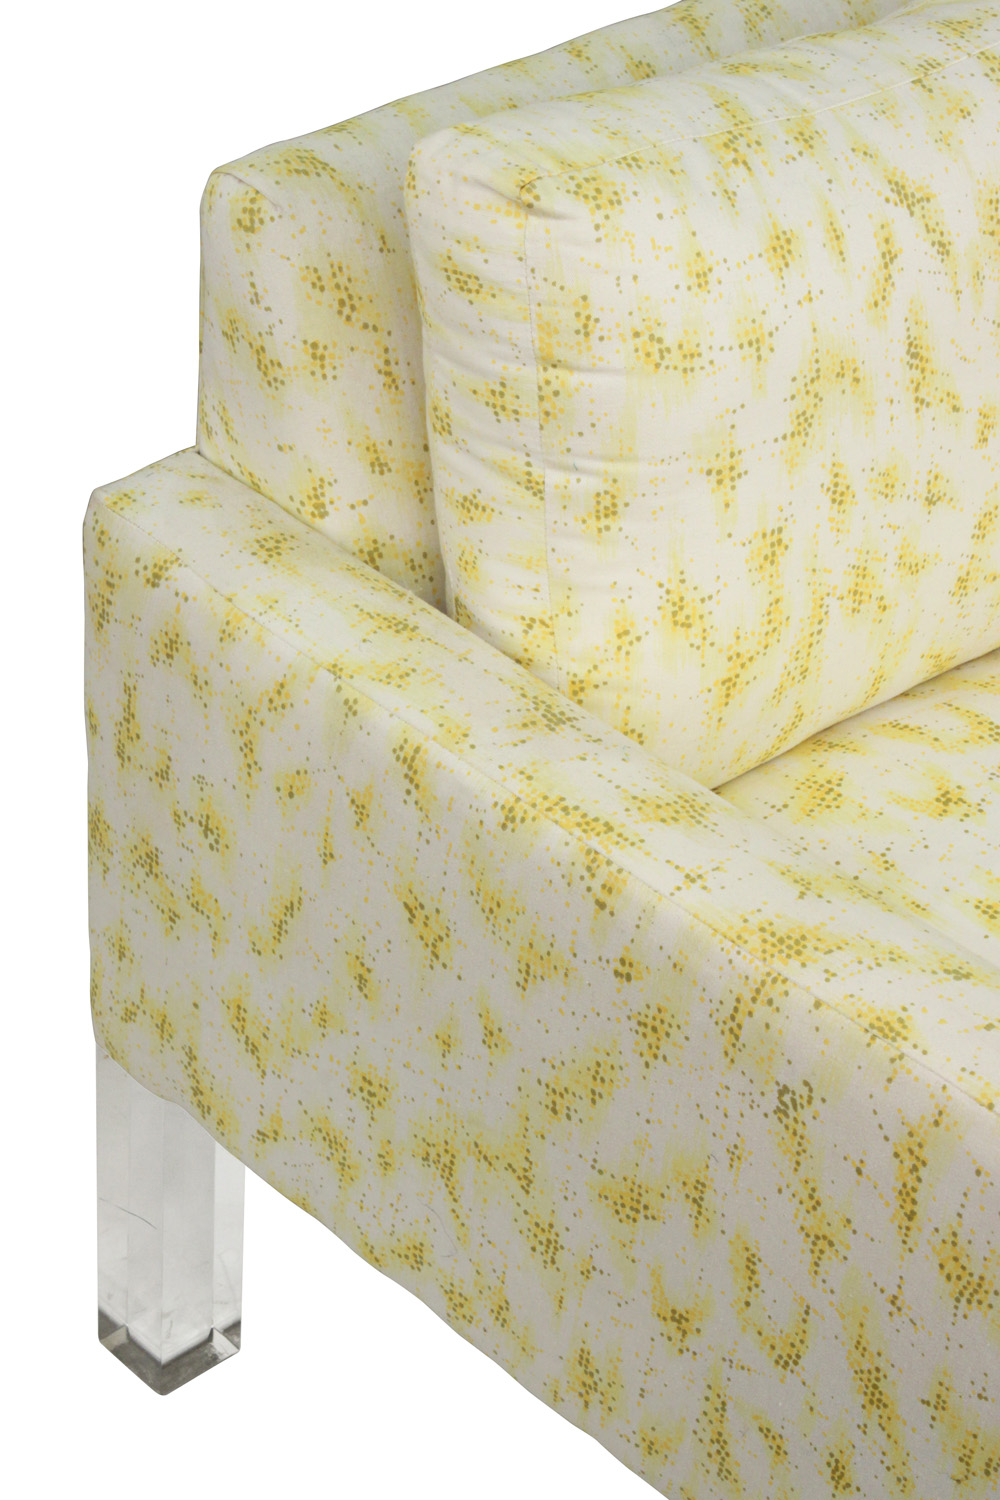 70's 85 boxy lucite legs clubchairs59 detail4 hires.jpg